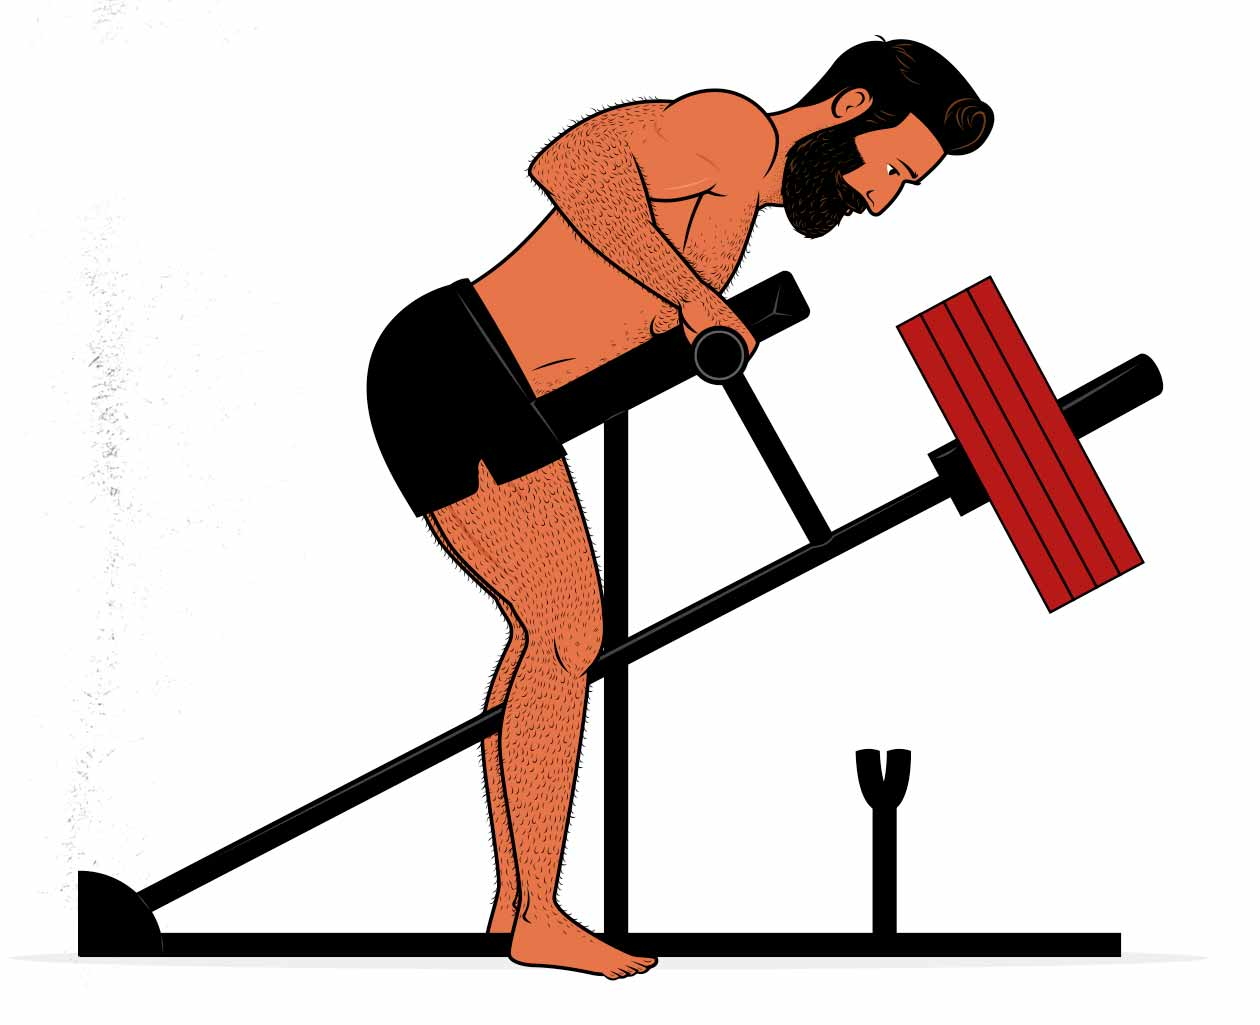 Illustration showing a man doing a row on a t-bar row exercise machine.